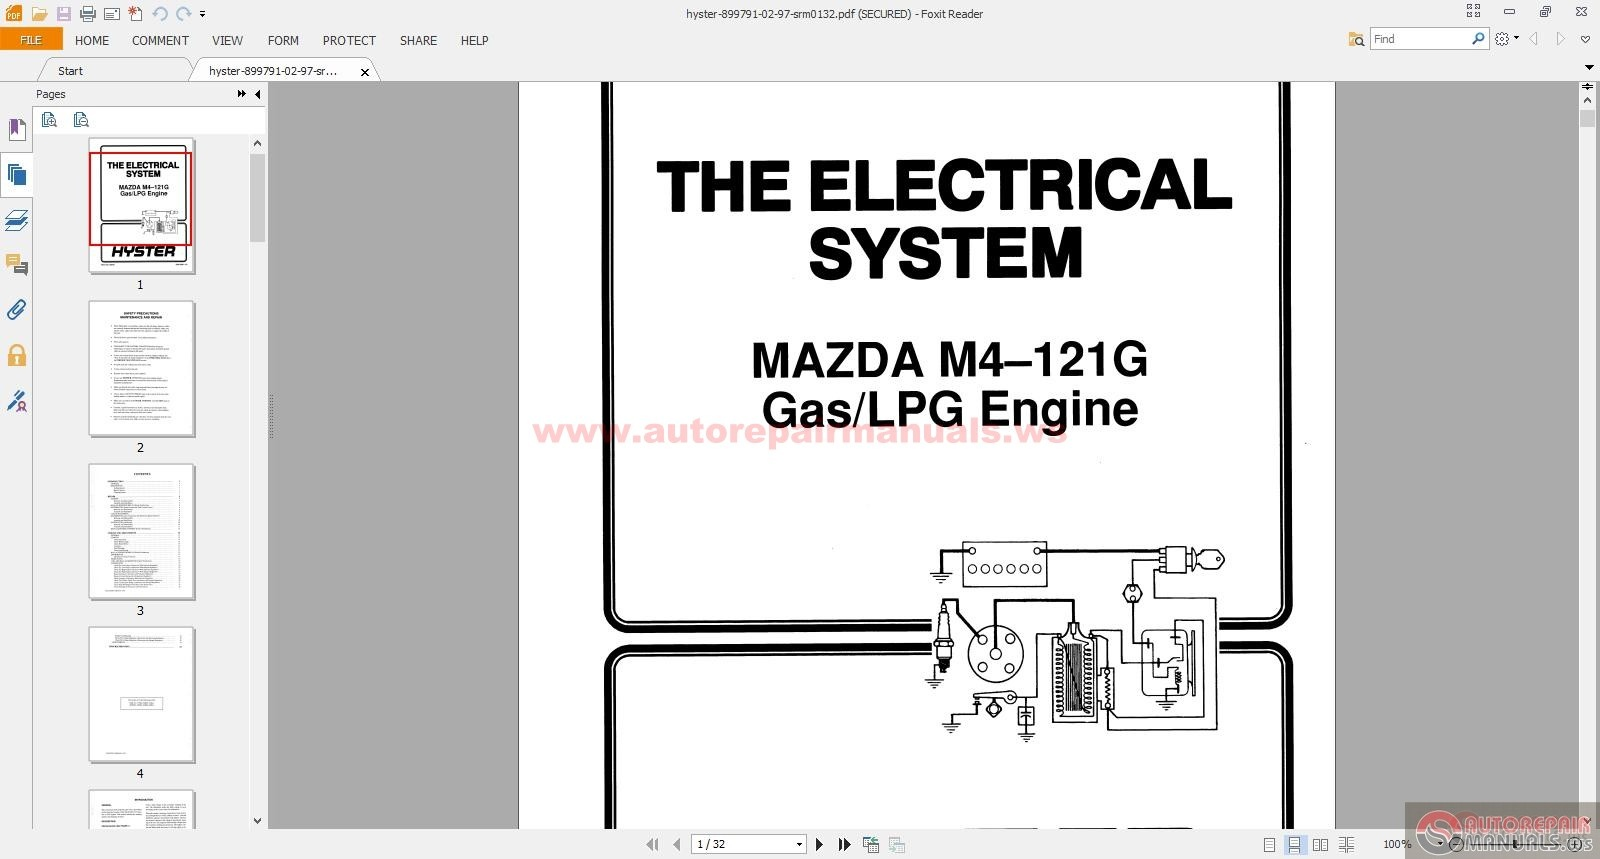 hyster h100xm wiring diagram best wiring library Hyster Forklift Schematic hyster h100xm wiring diagram wiring library hyster 90 manual hyster h100xm wiring diagram